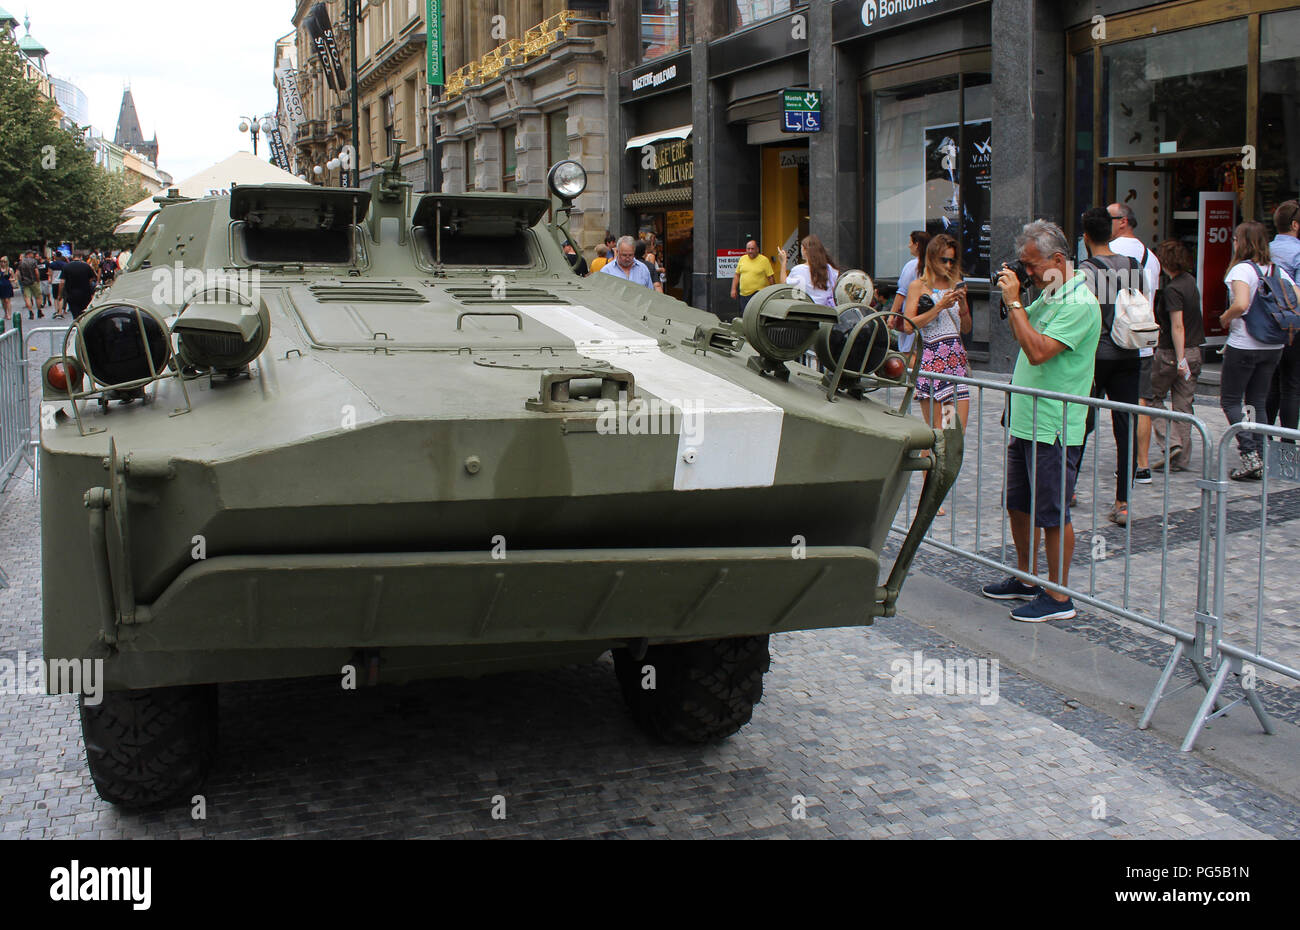 A Soviet Army's Combat Reconnaissance/Patrol Vehicle is exhibited in Prague, Czech Republic, on August 21, 2018, on the occasion of the 50th anniversa - Stock Image